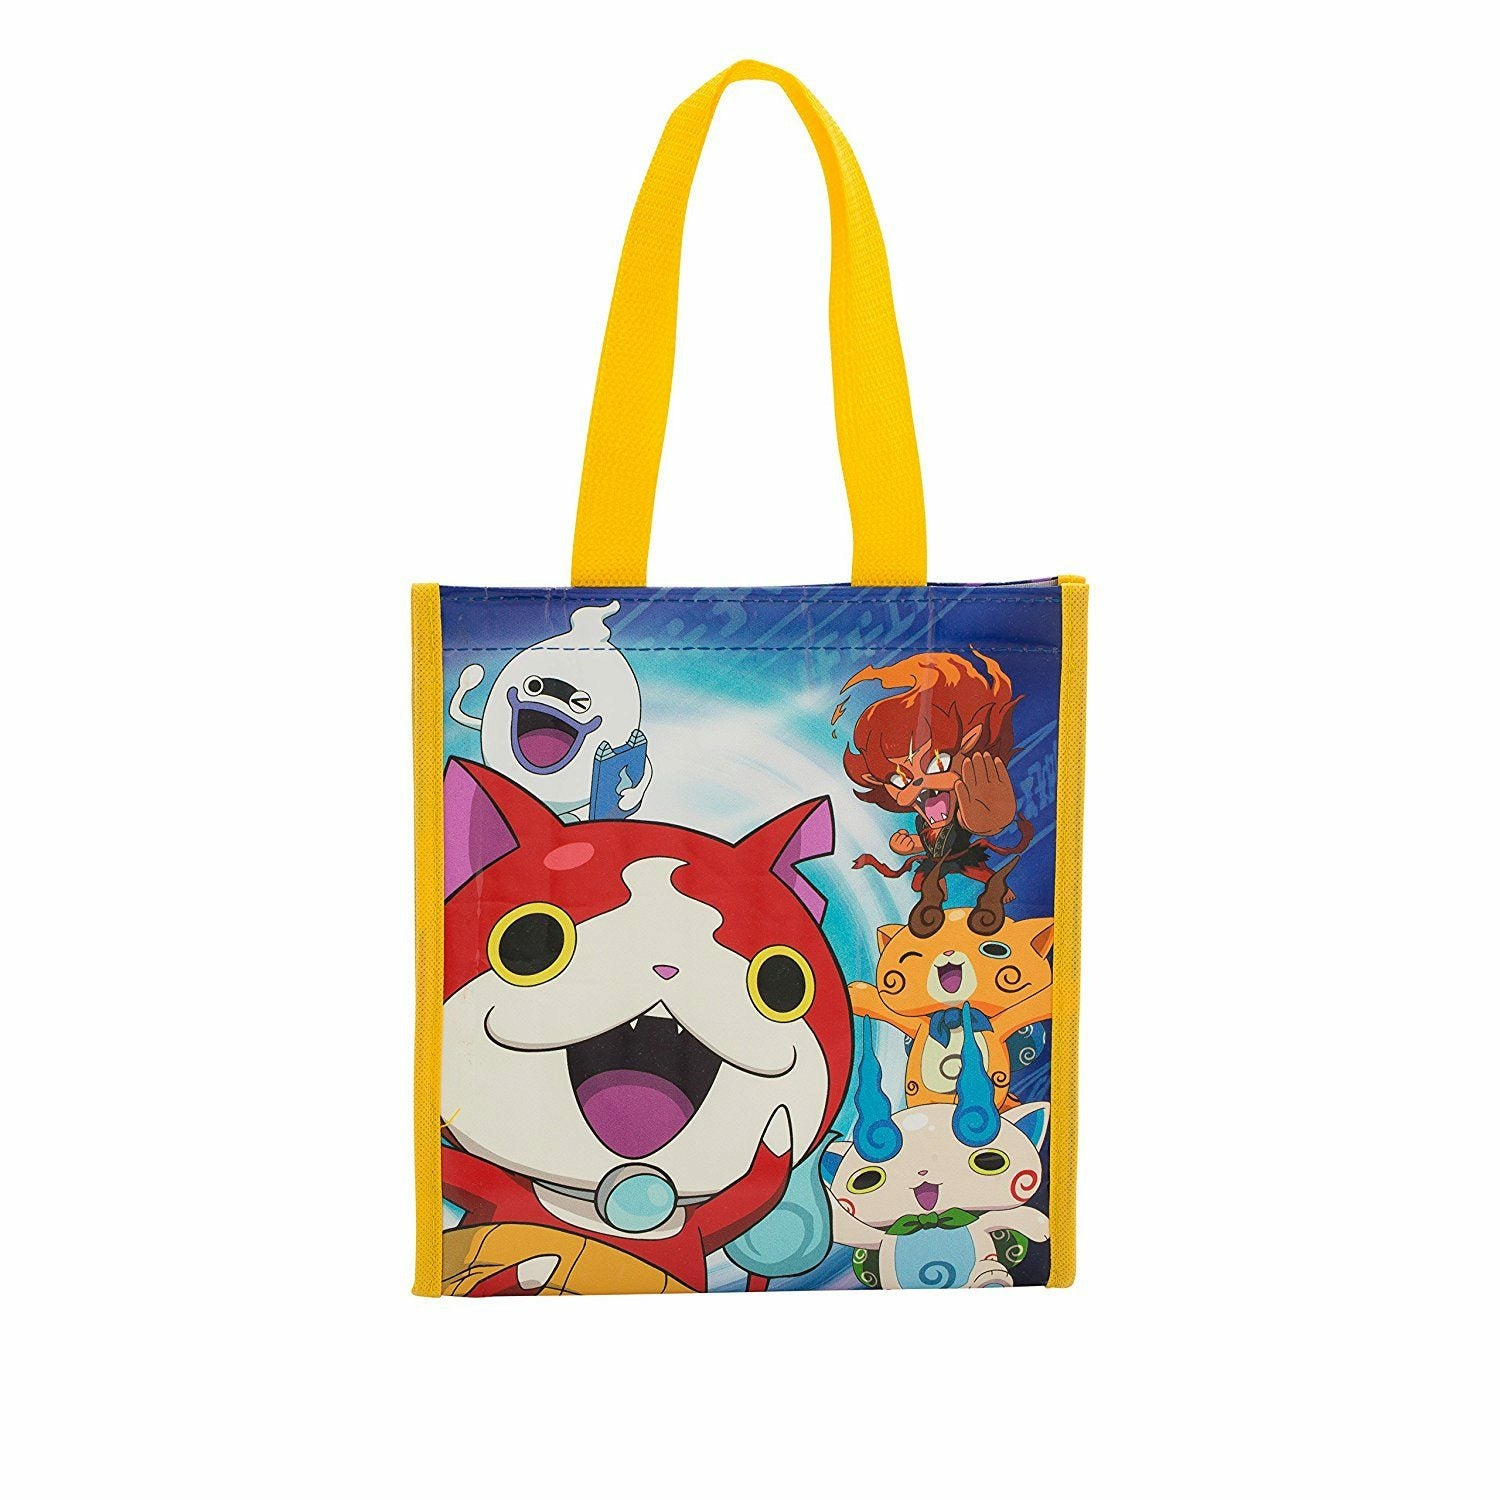 Yo-kai Watch Insulated Recycled Tote Bag